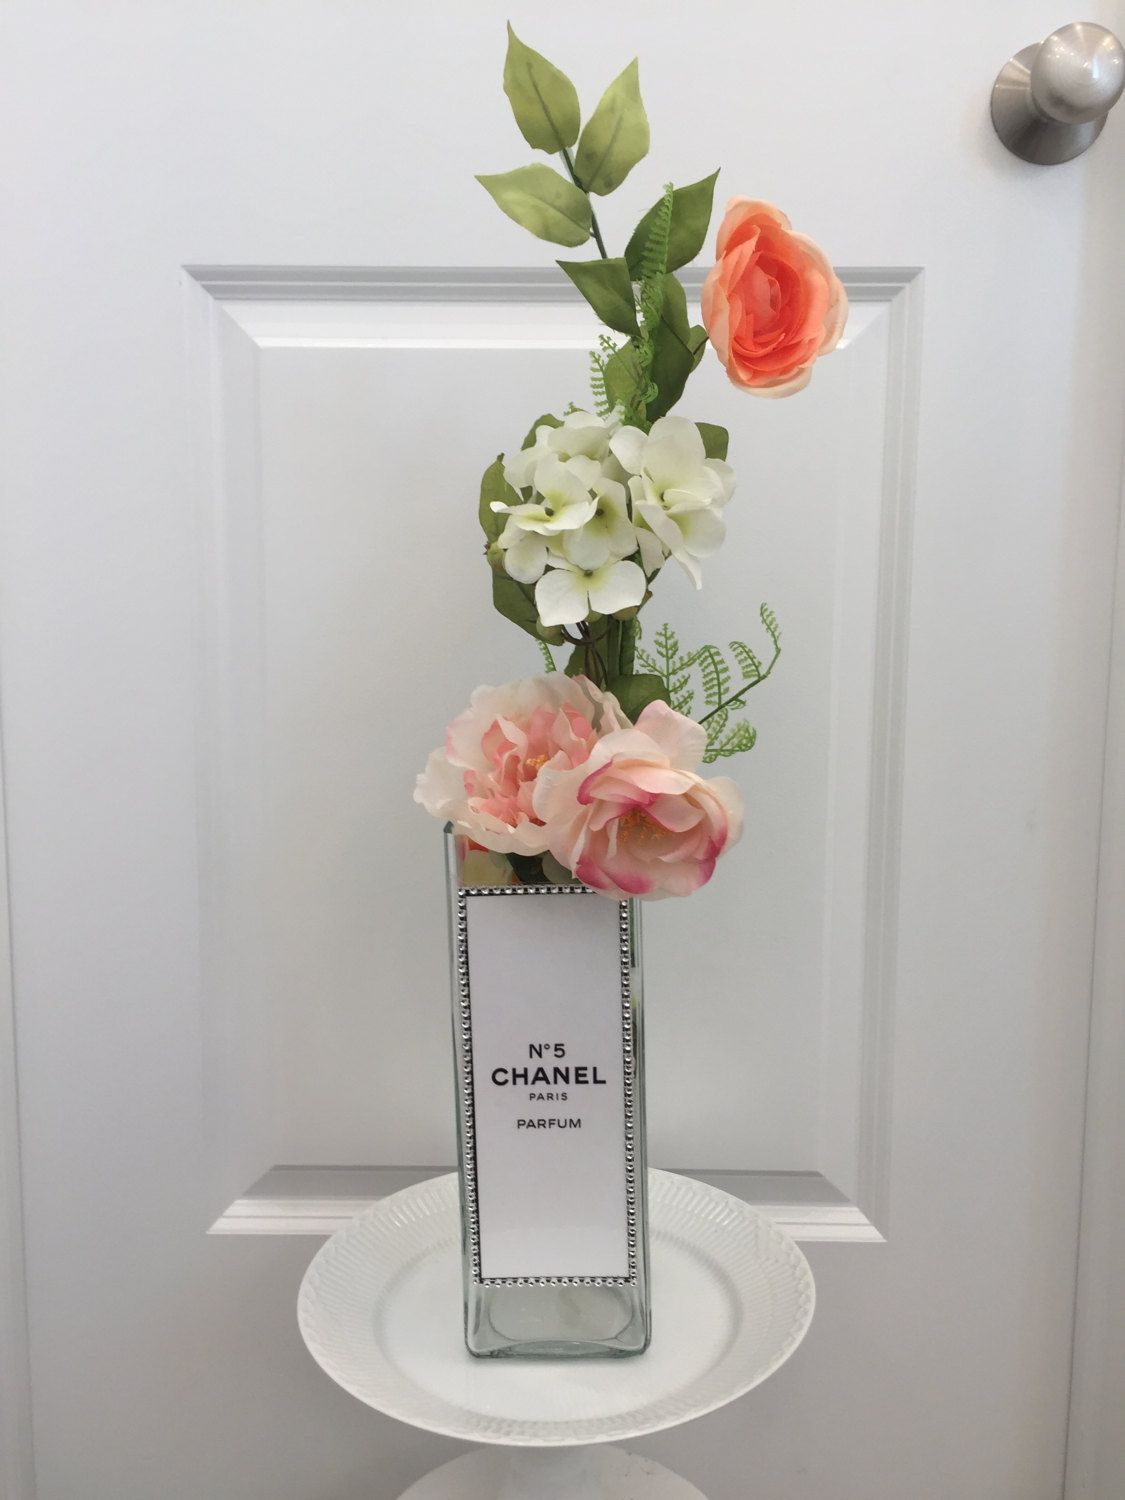 Chanel Inspired Tall Glass Flower Vase Free Floral Bouquet by  PrintcessCharming on Etsy